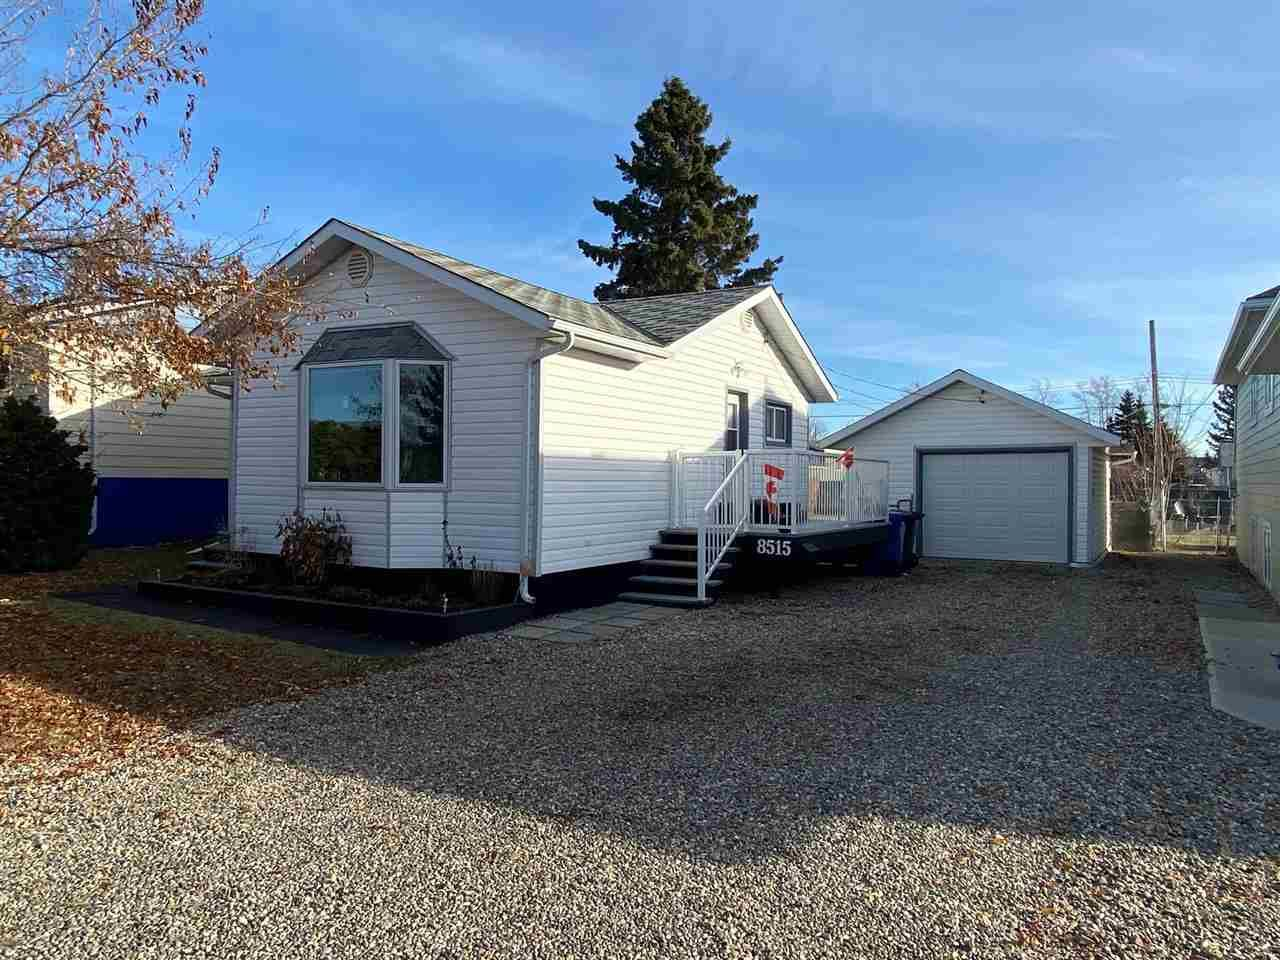 Main Photo: 8515 78A Street in Fort St. John: Fort St. John - City SE House for sale (Fort St. John (Zone 60))  : MLS®# R2511275